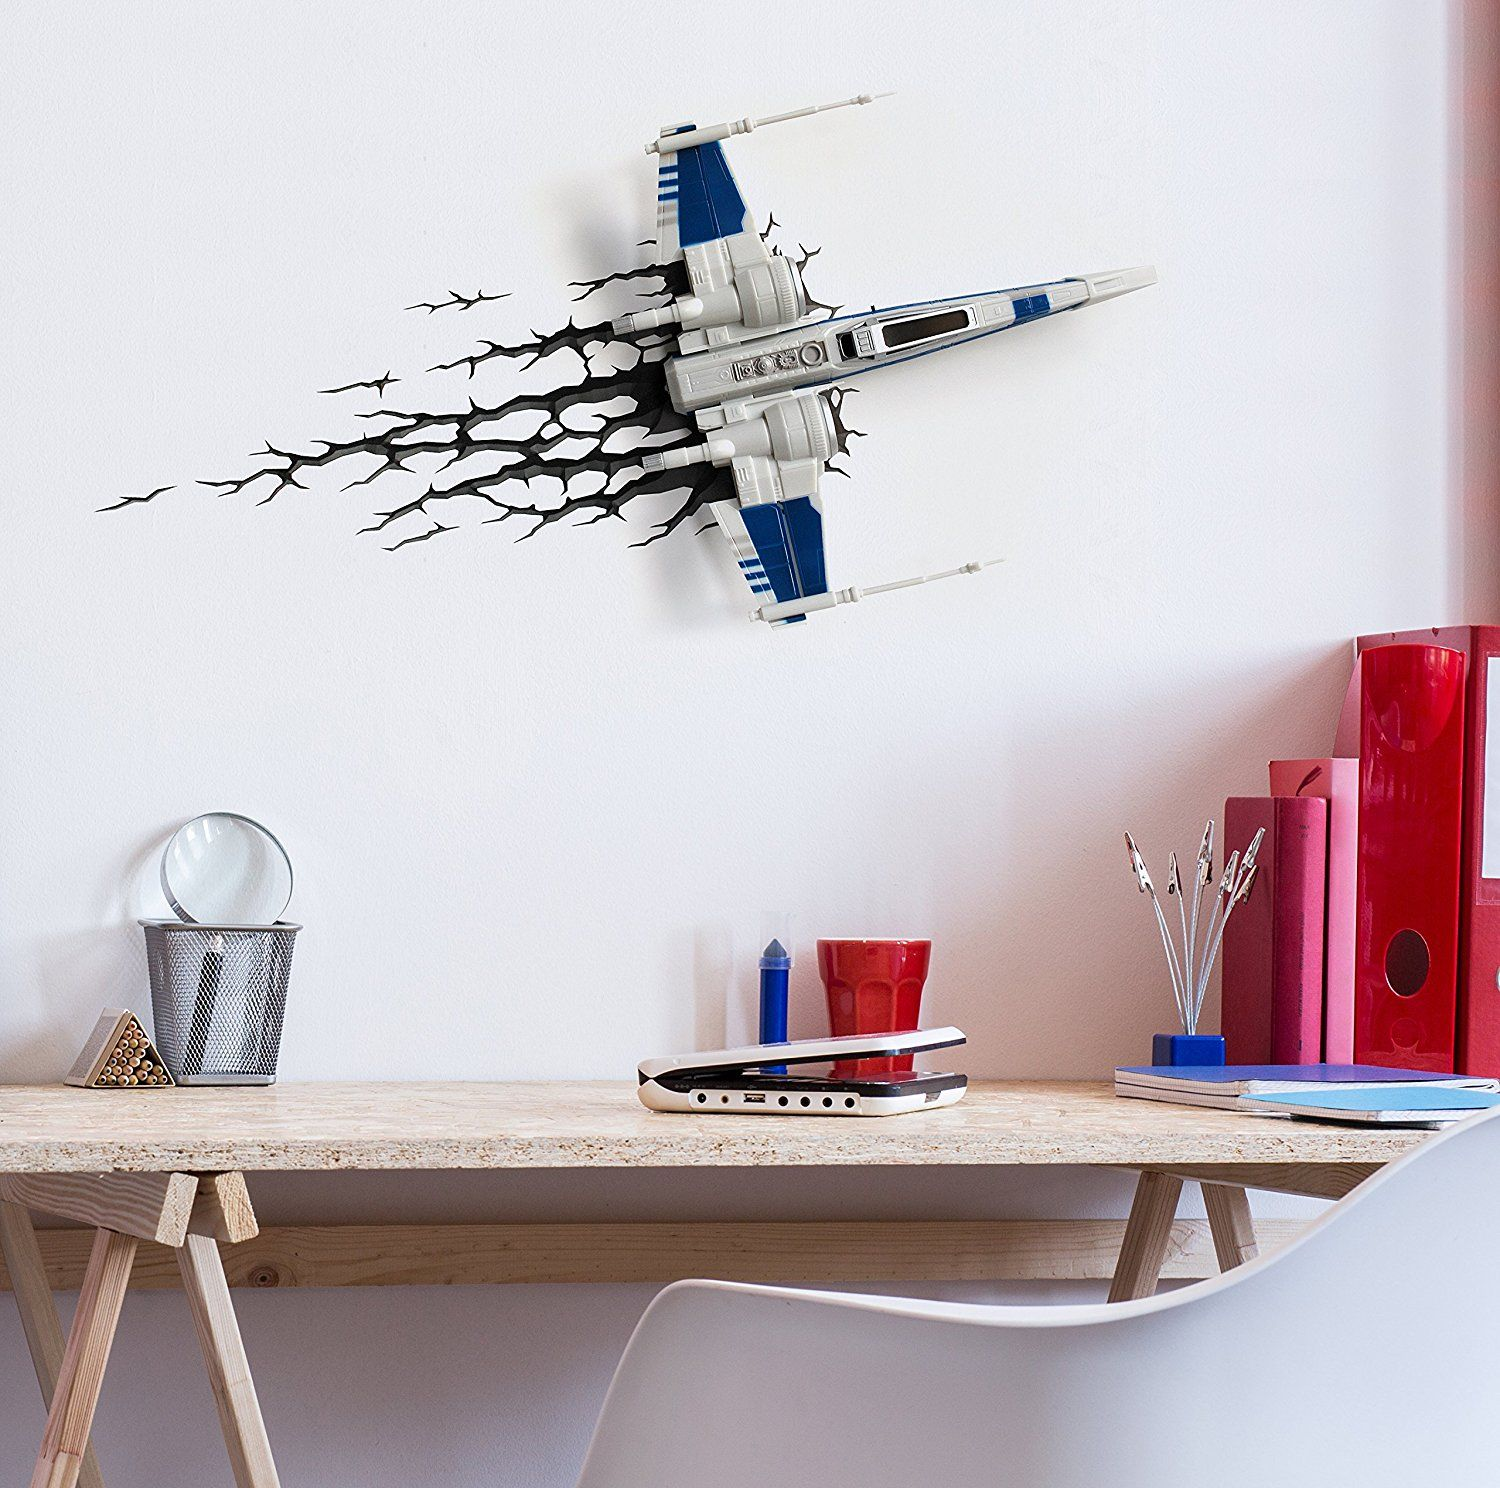 ⭐NEW : Lampe Murale X-Wing Star Wars  Dispo ici ➡ http://ow.ly/ADbv30ceb0a  #StarWars #deco #lampe